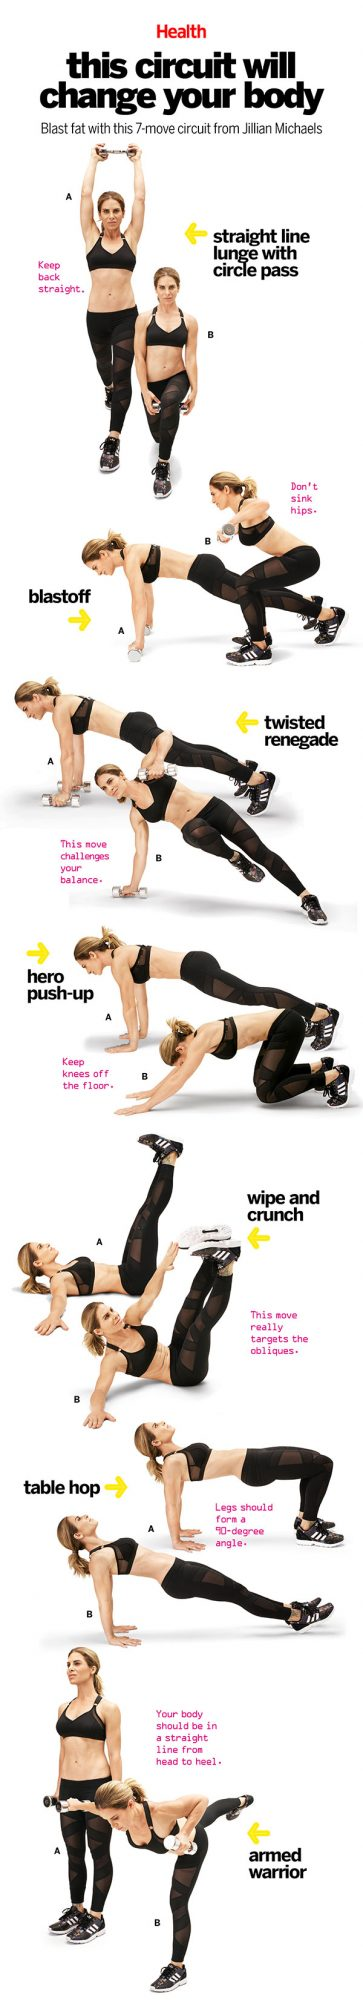 jillian-michaels-circuit-workout